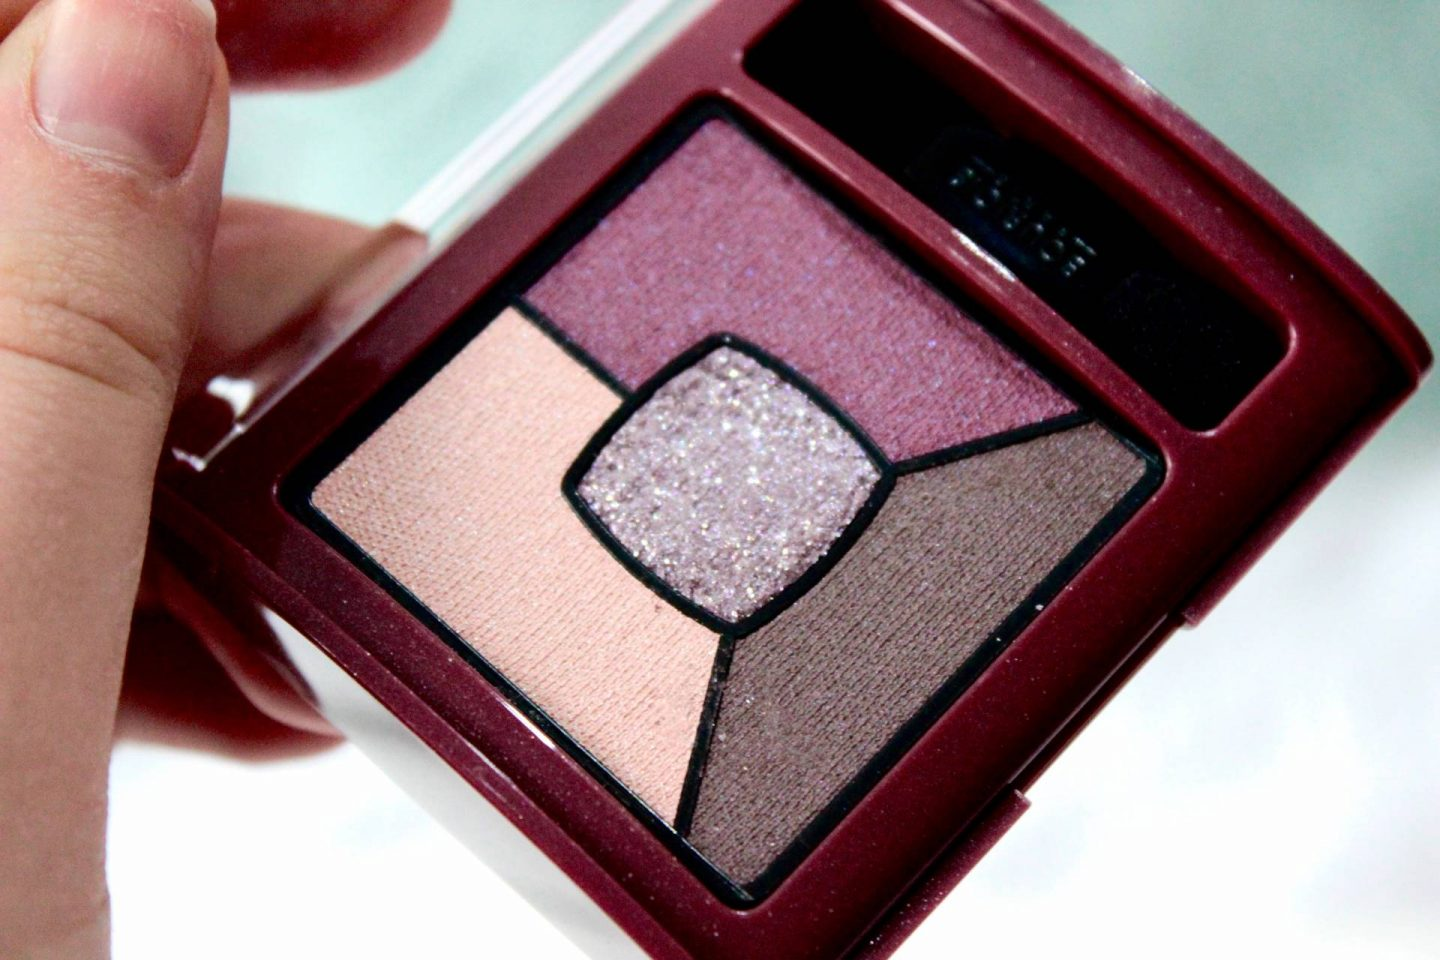 Bourjois In Mauve smokey eyeshadow quad